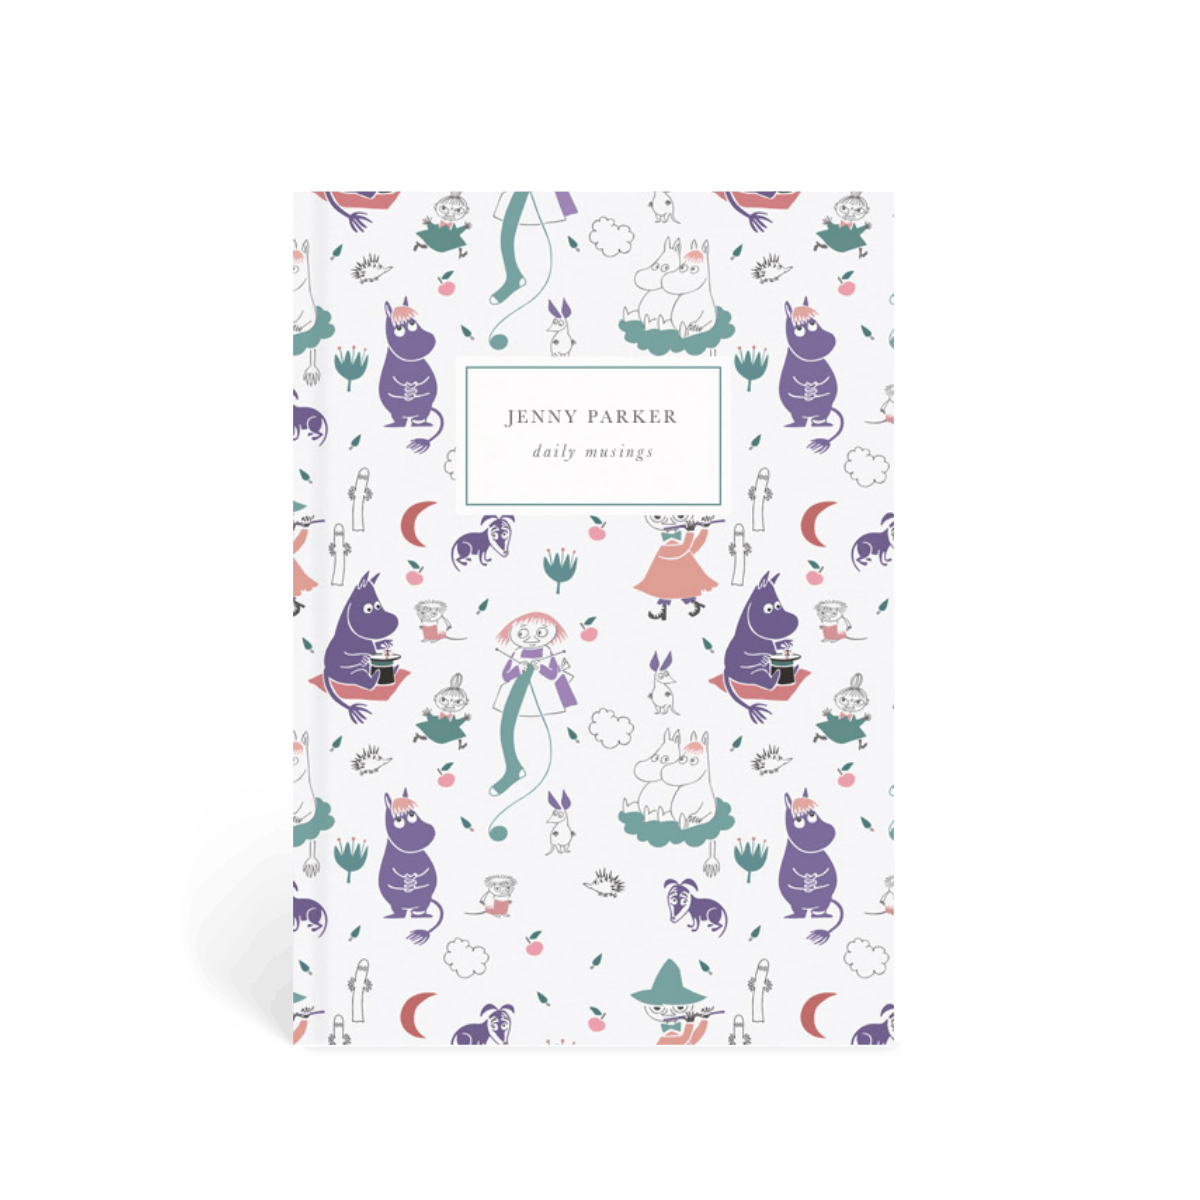 Https%3a%2f%2fwww.papier.com%2fproduct image%2f54607%2f25%2fpurple moomins 13127 front 1542298710.png?ixlib=rb 1.1